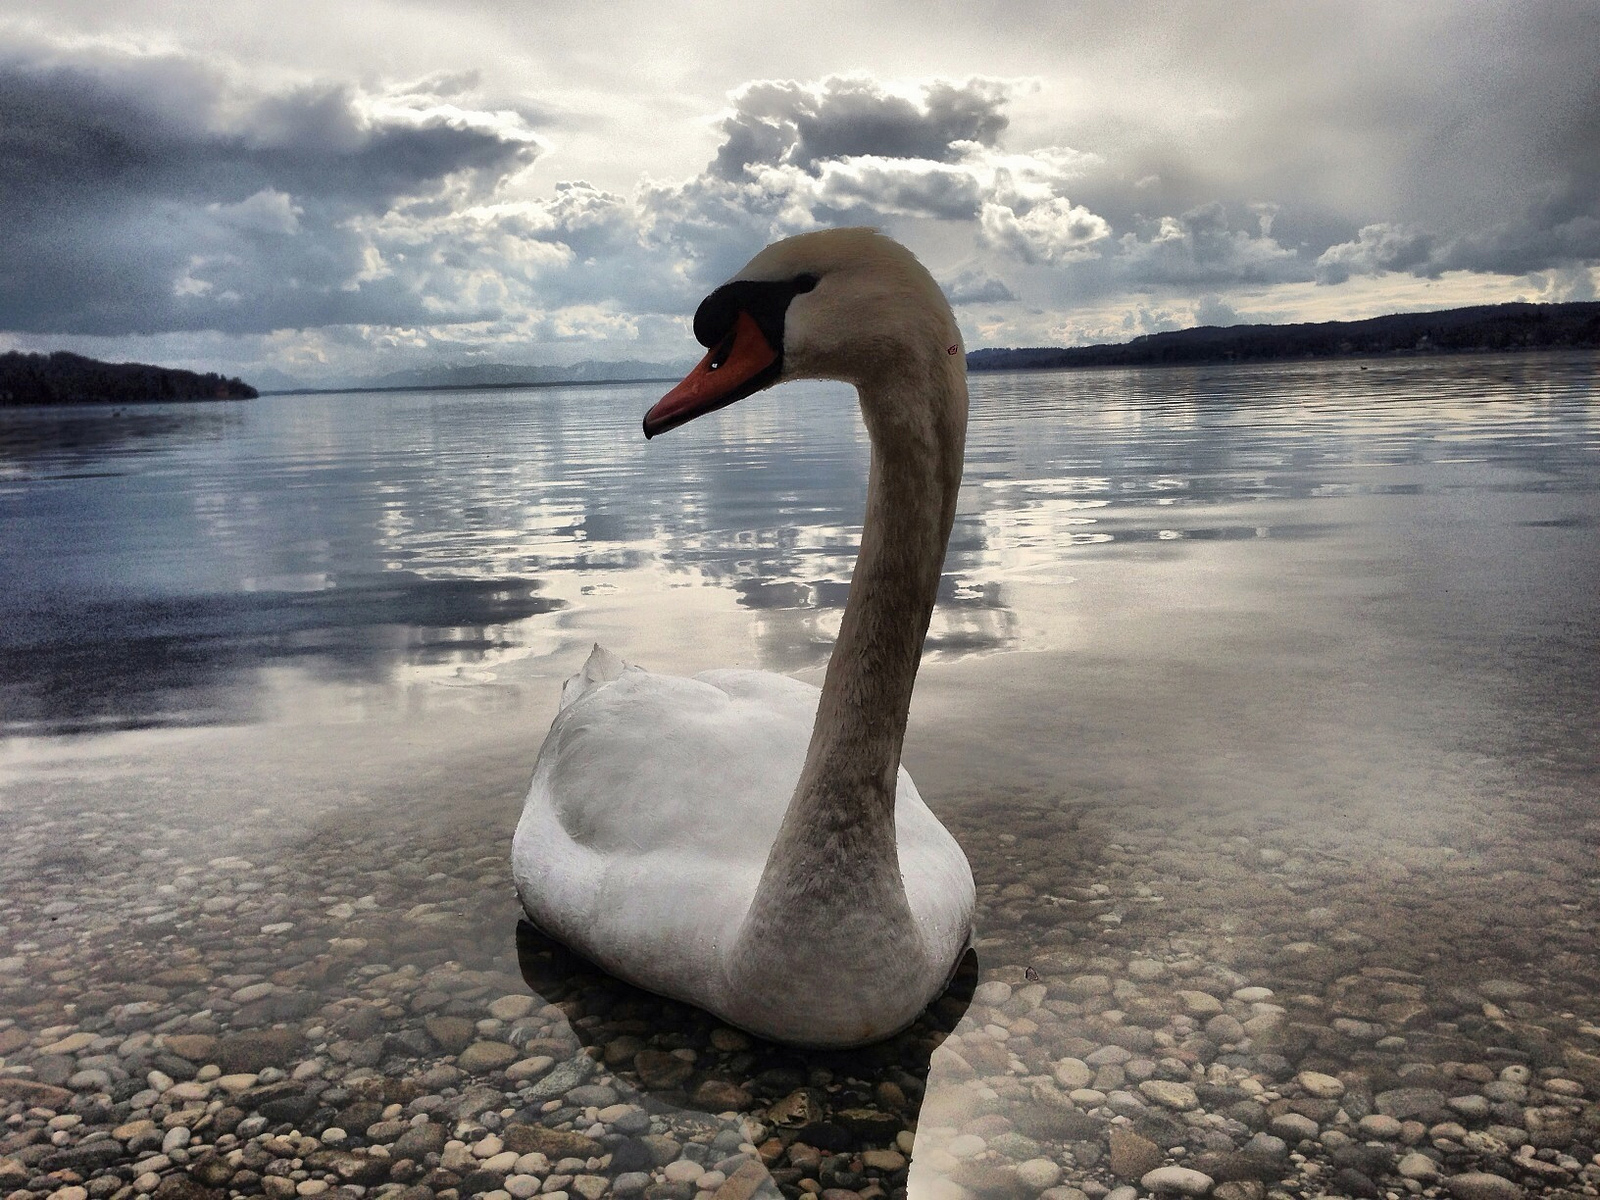 Swan Day 16